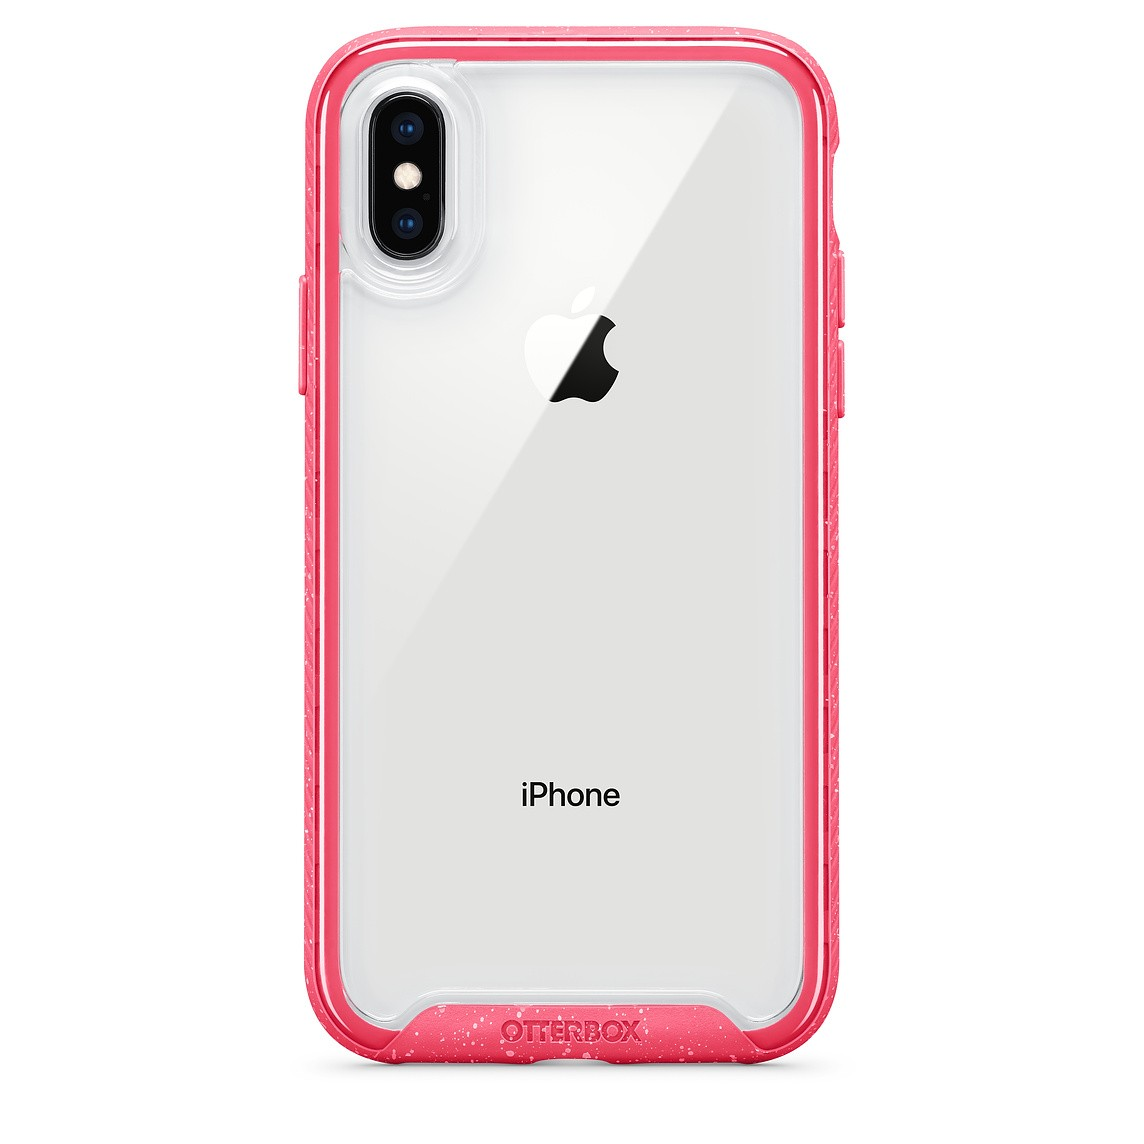 Capa OtterBox Mod Traction Rosa Compatível com iPhone X/XS